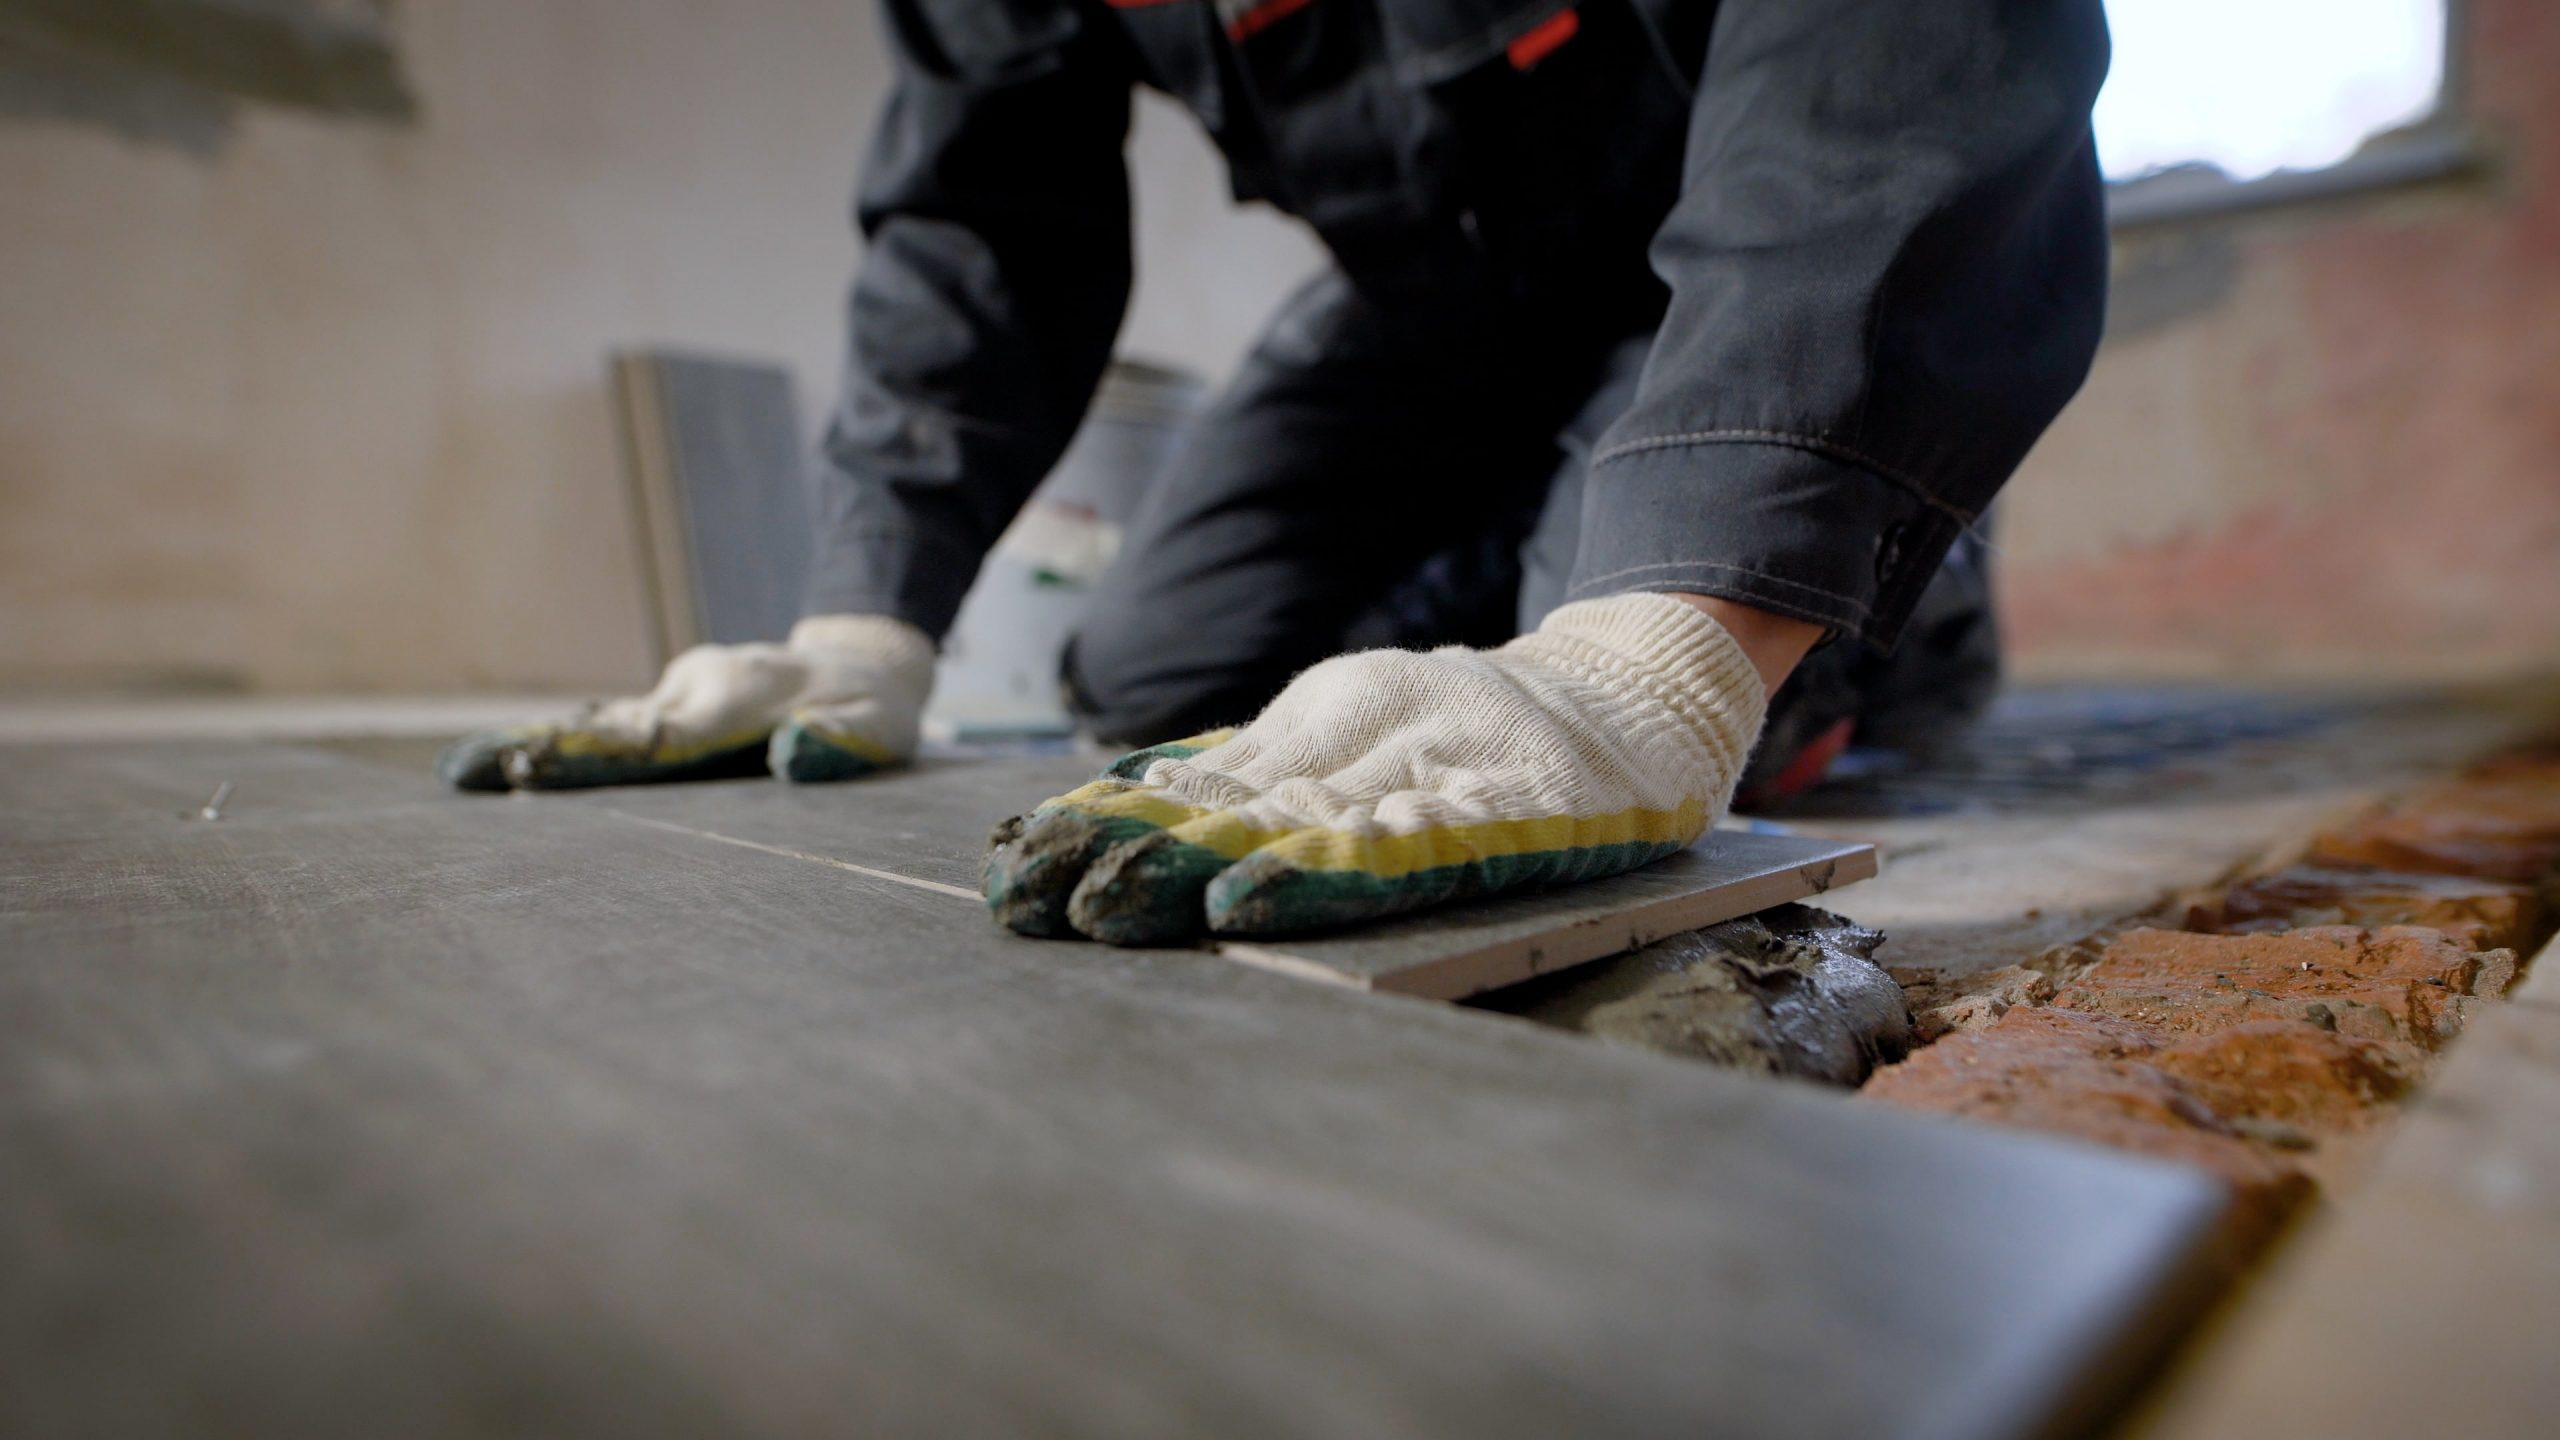 blog image of a contractor installing floor tile in an apartment